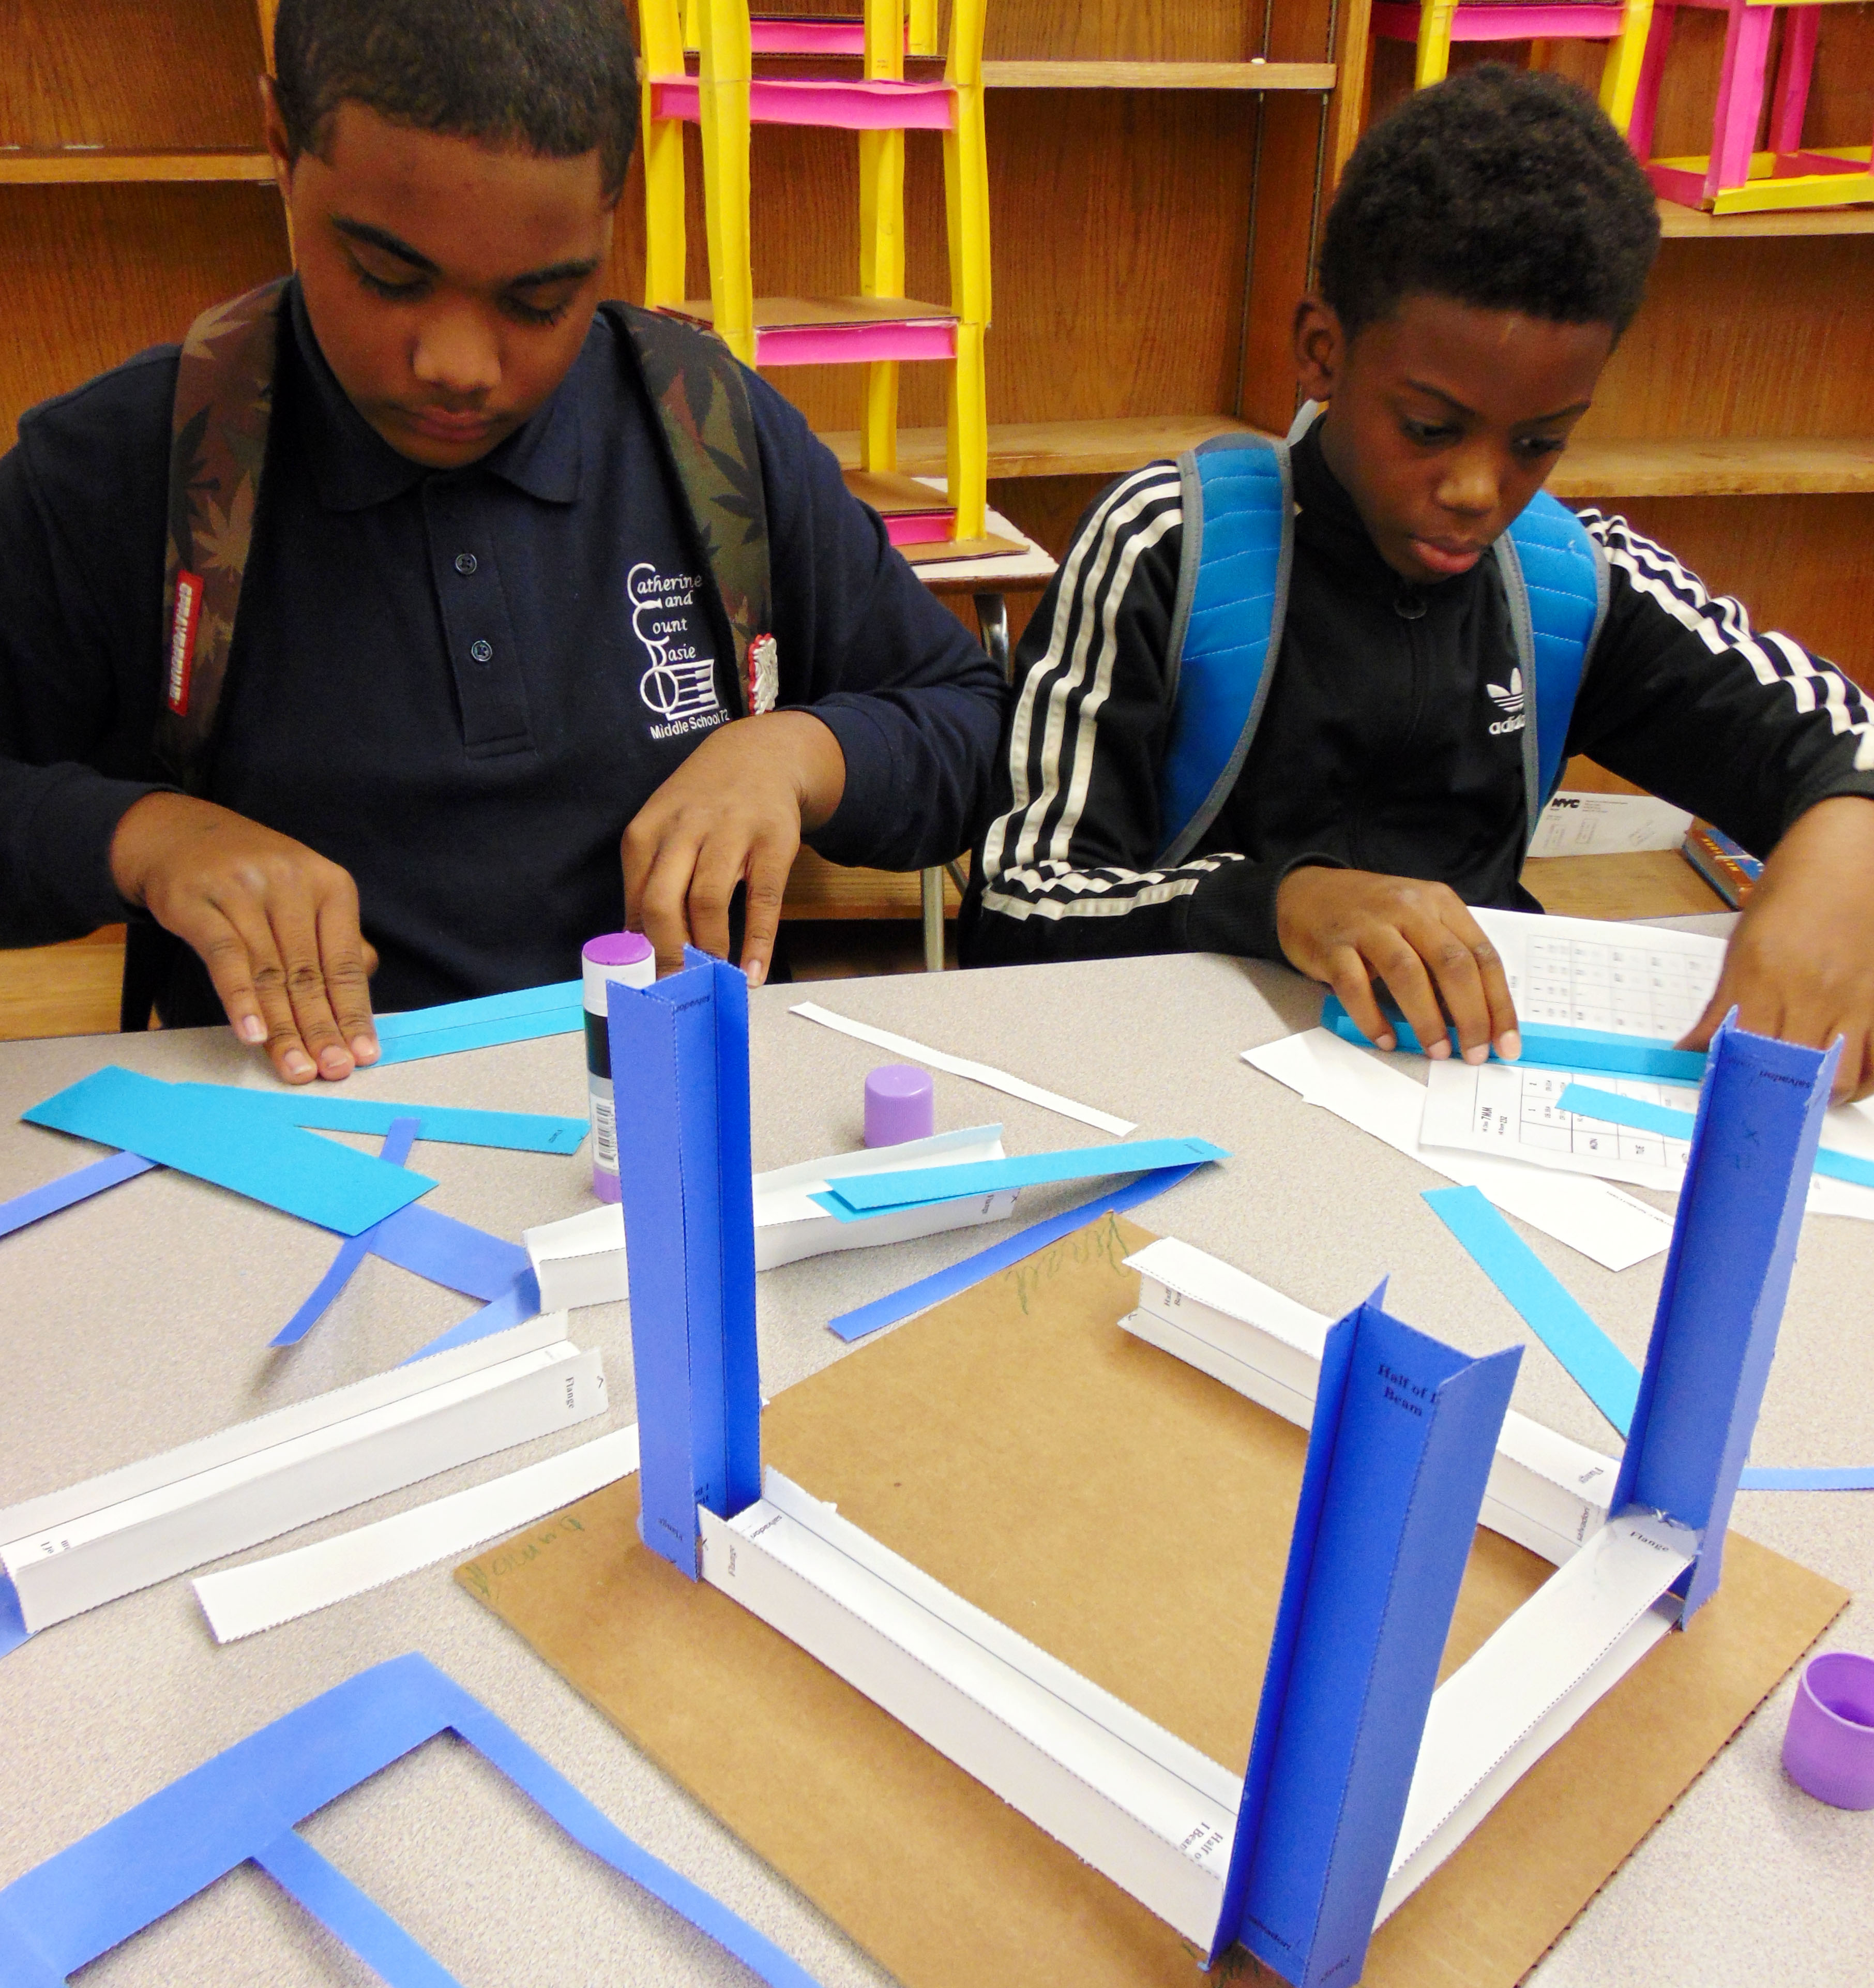 Students learn about architecture at the Salvadori Center